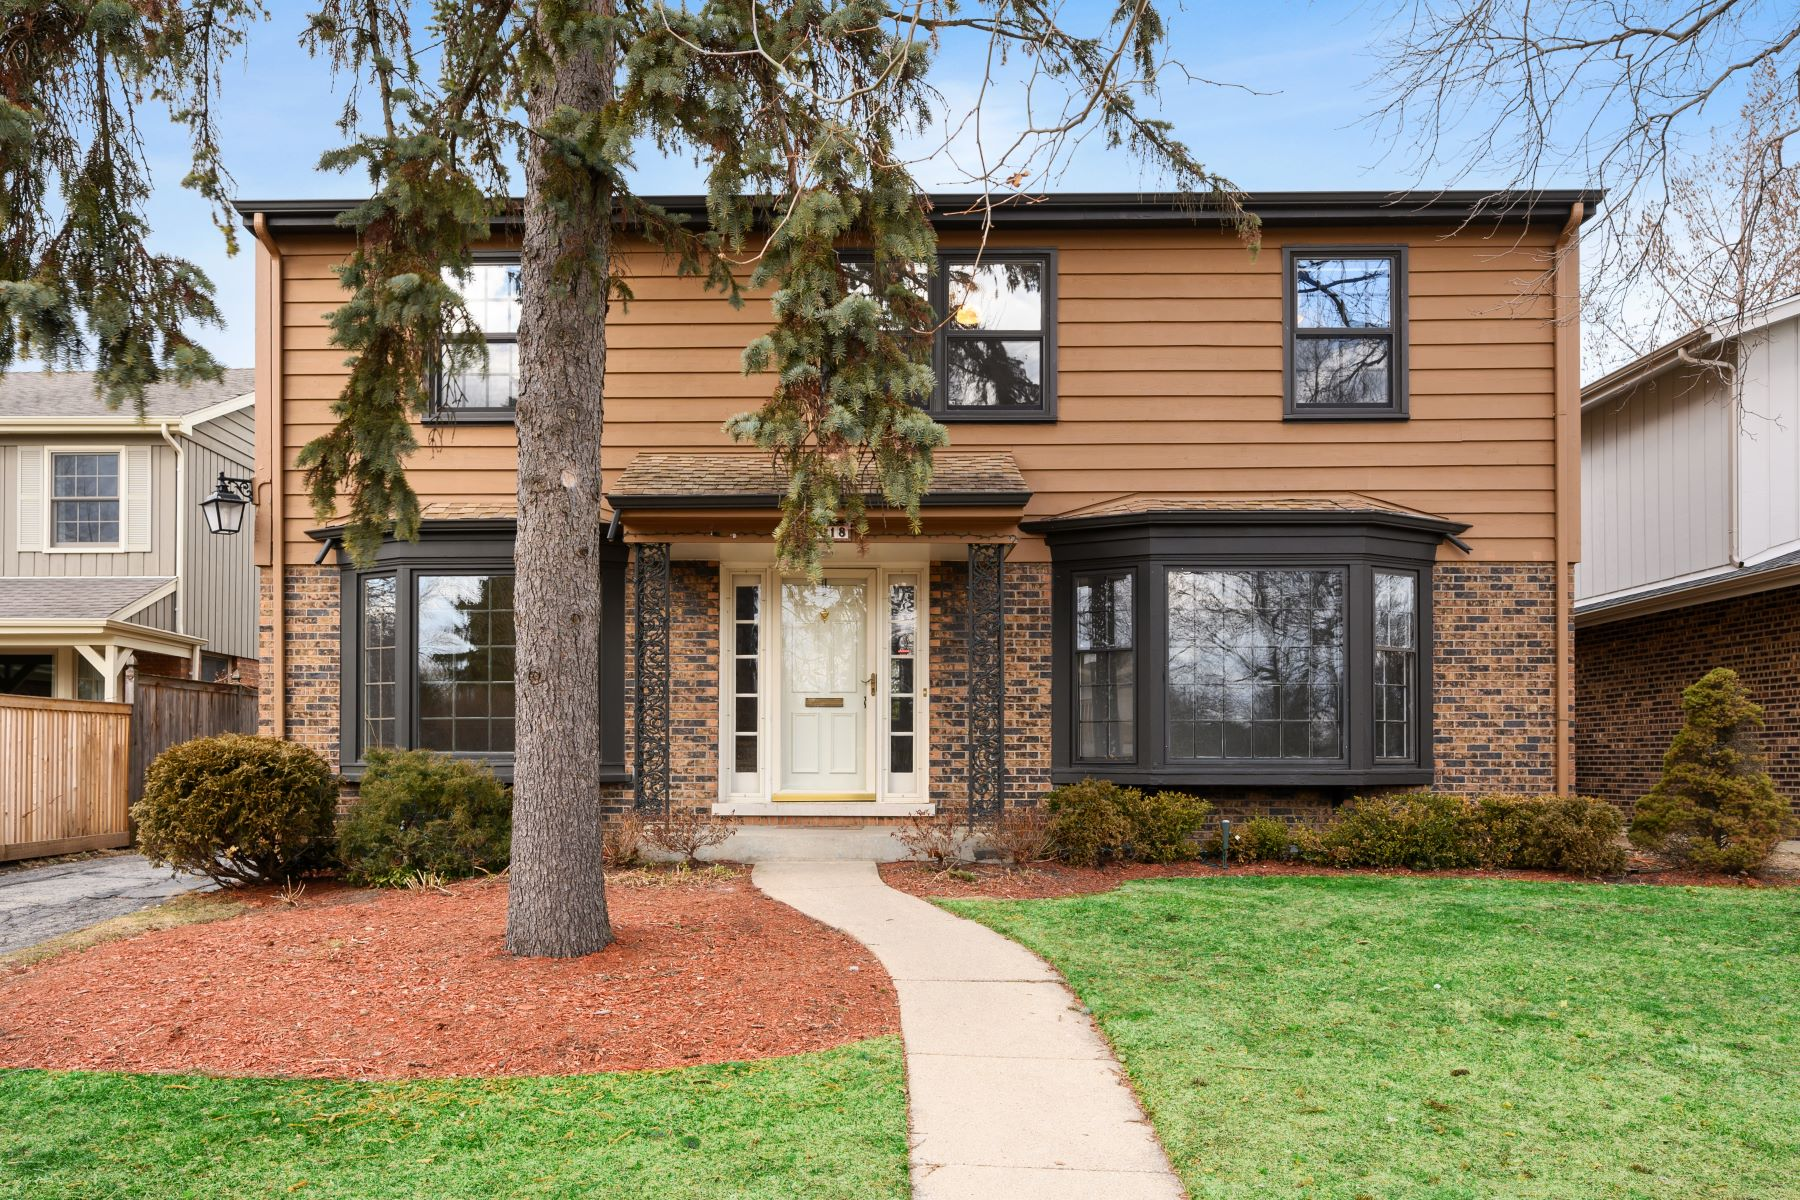 Single Family Homes for Active at Spacious Modern Home 2018 Elmwood Avenue Wilmette, Illinois 60091 United States